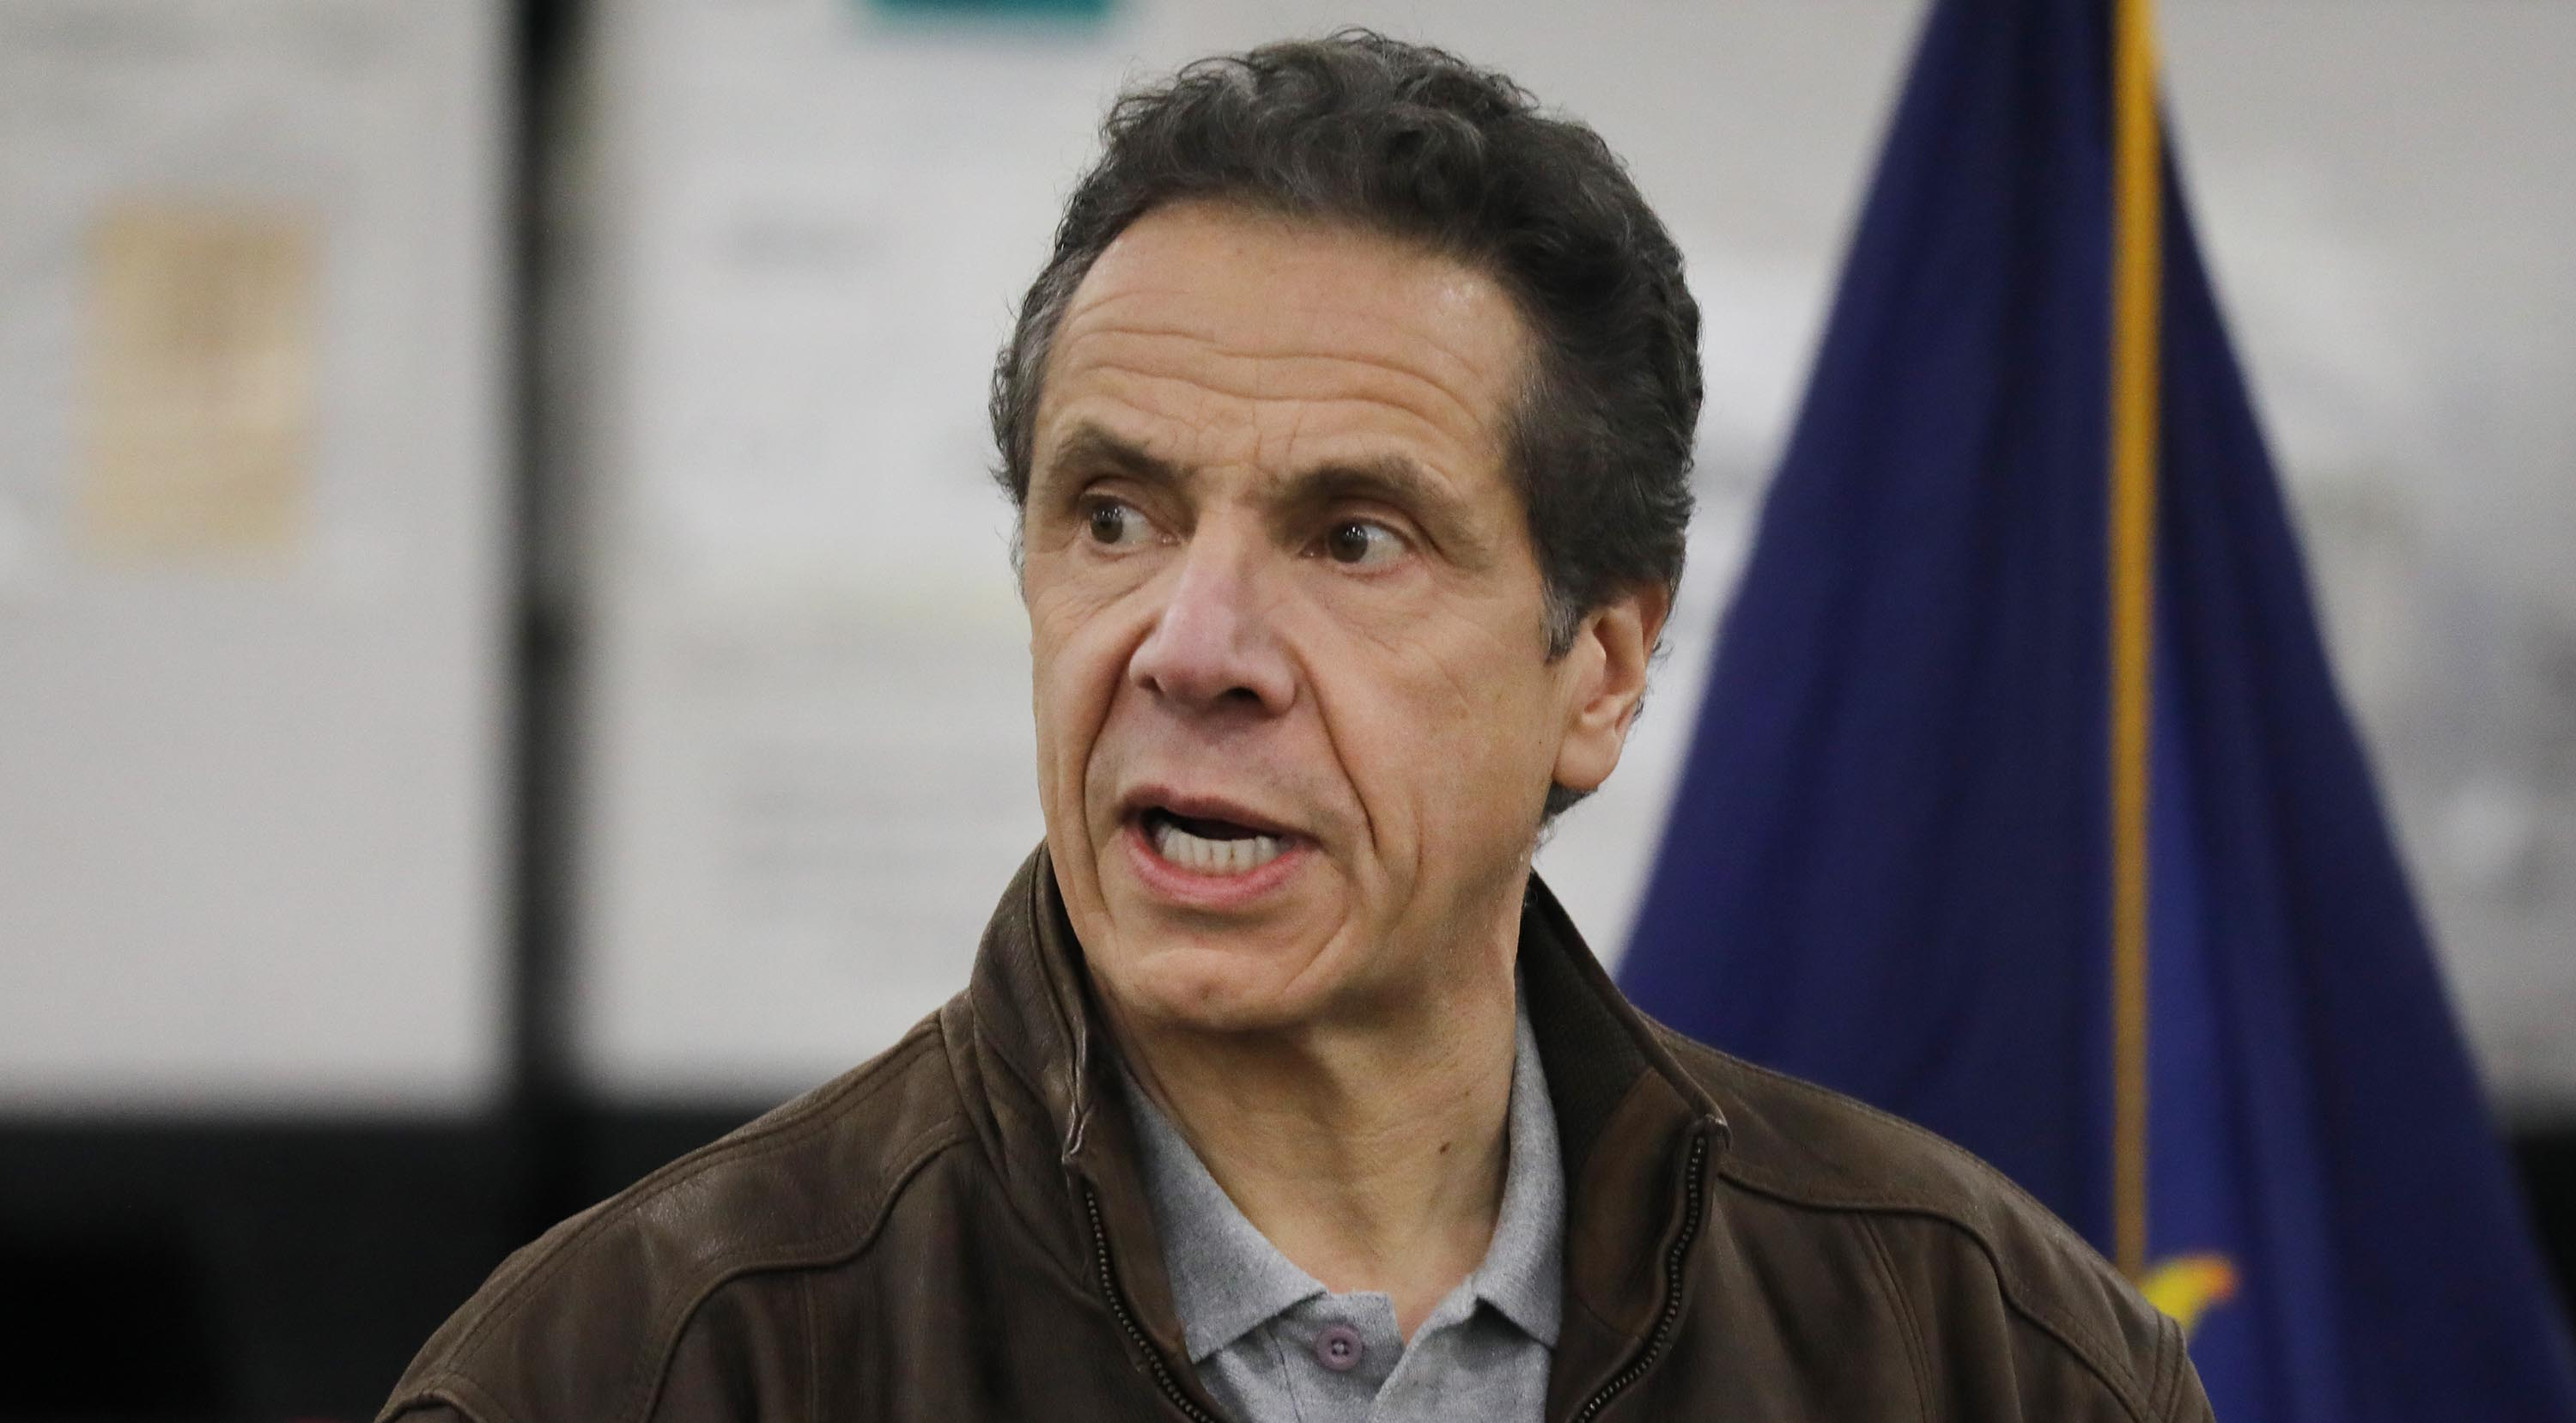 New York Governor Andrew Cuomo speaks to the media and members of the National Guard on March 23, in New York City.